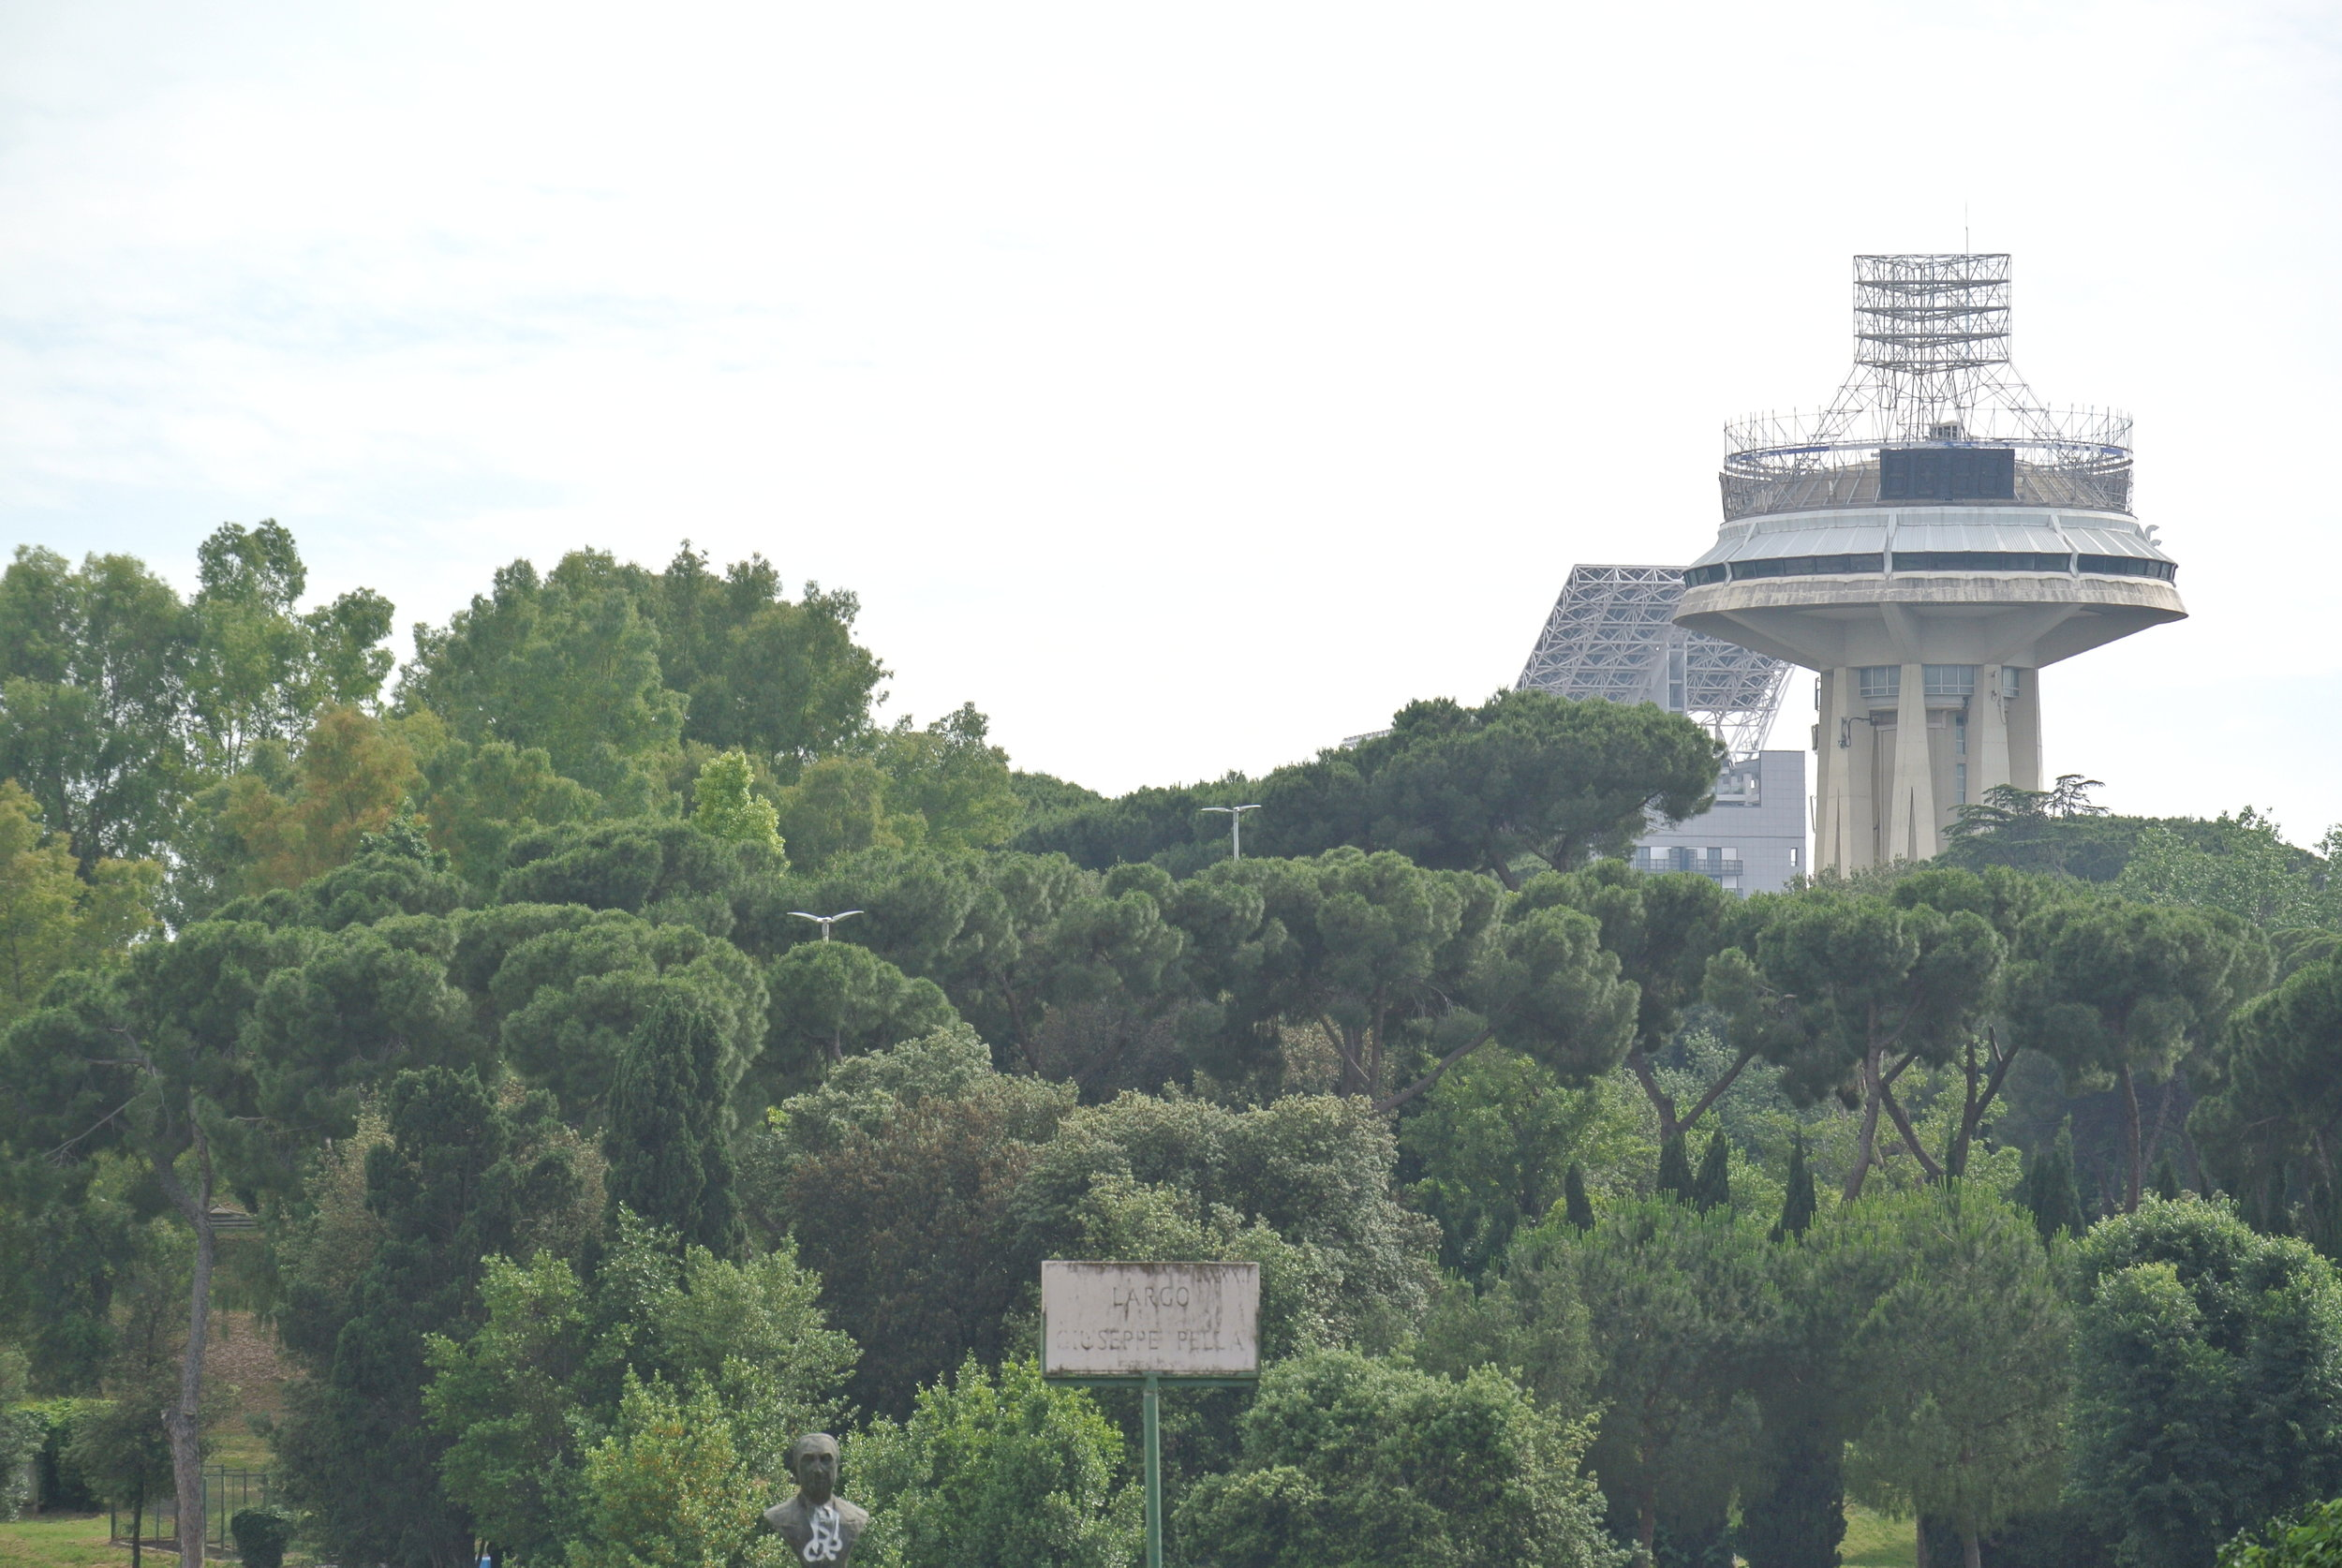 The Mothership: she keeps watch over the space colony. Rome, EUR; May 2018.  ©Pamela Kerpius